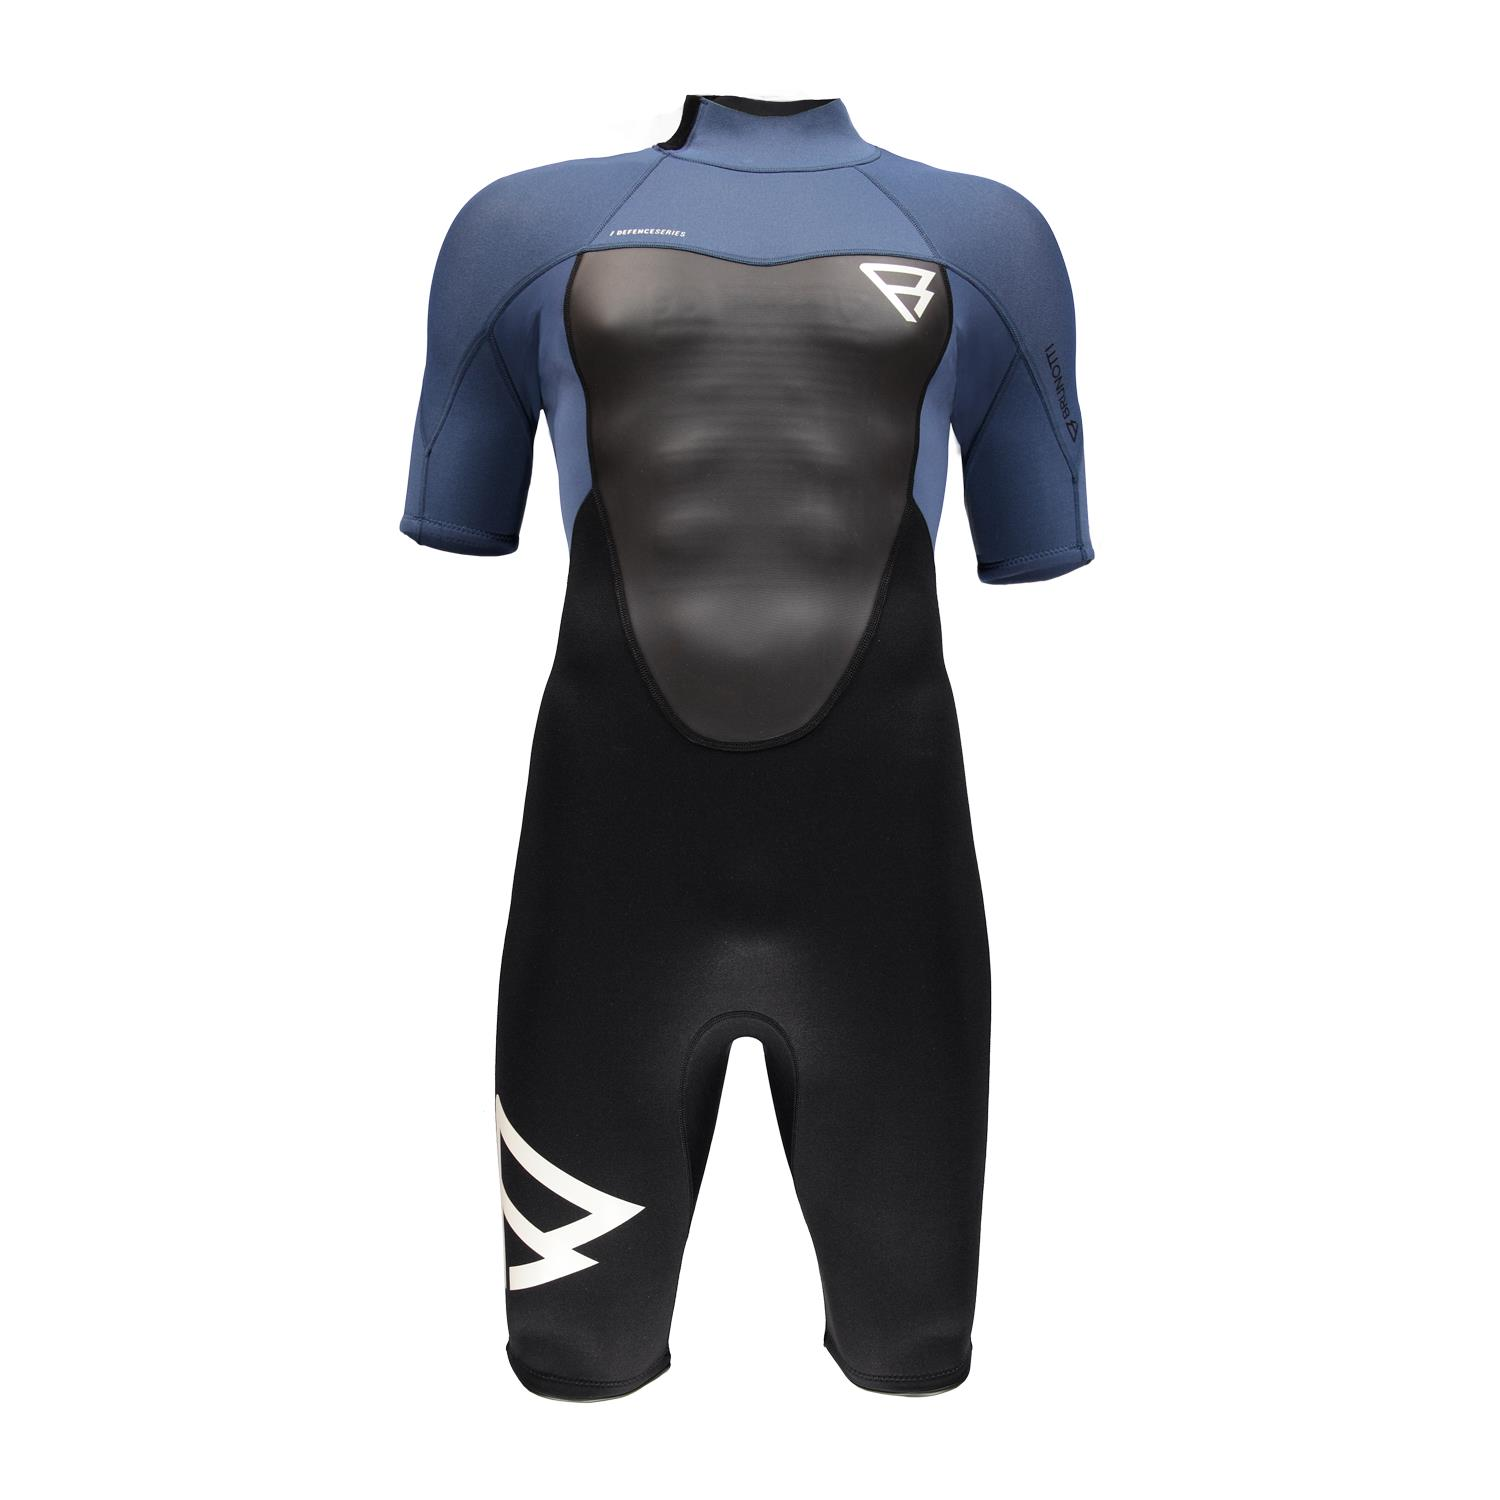 DEFENCE SHORTY 3/2 MEN WETSUIT BLUE BRUNOTTI 2018